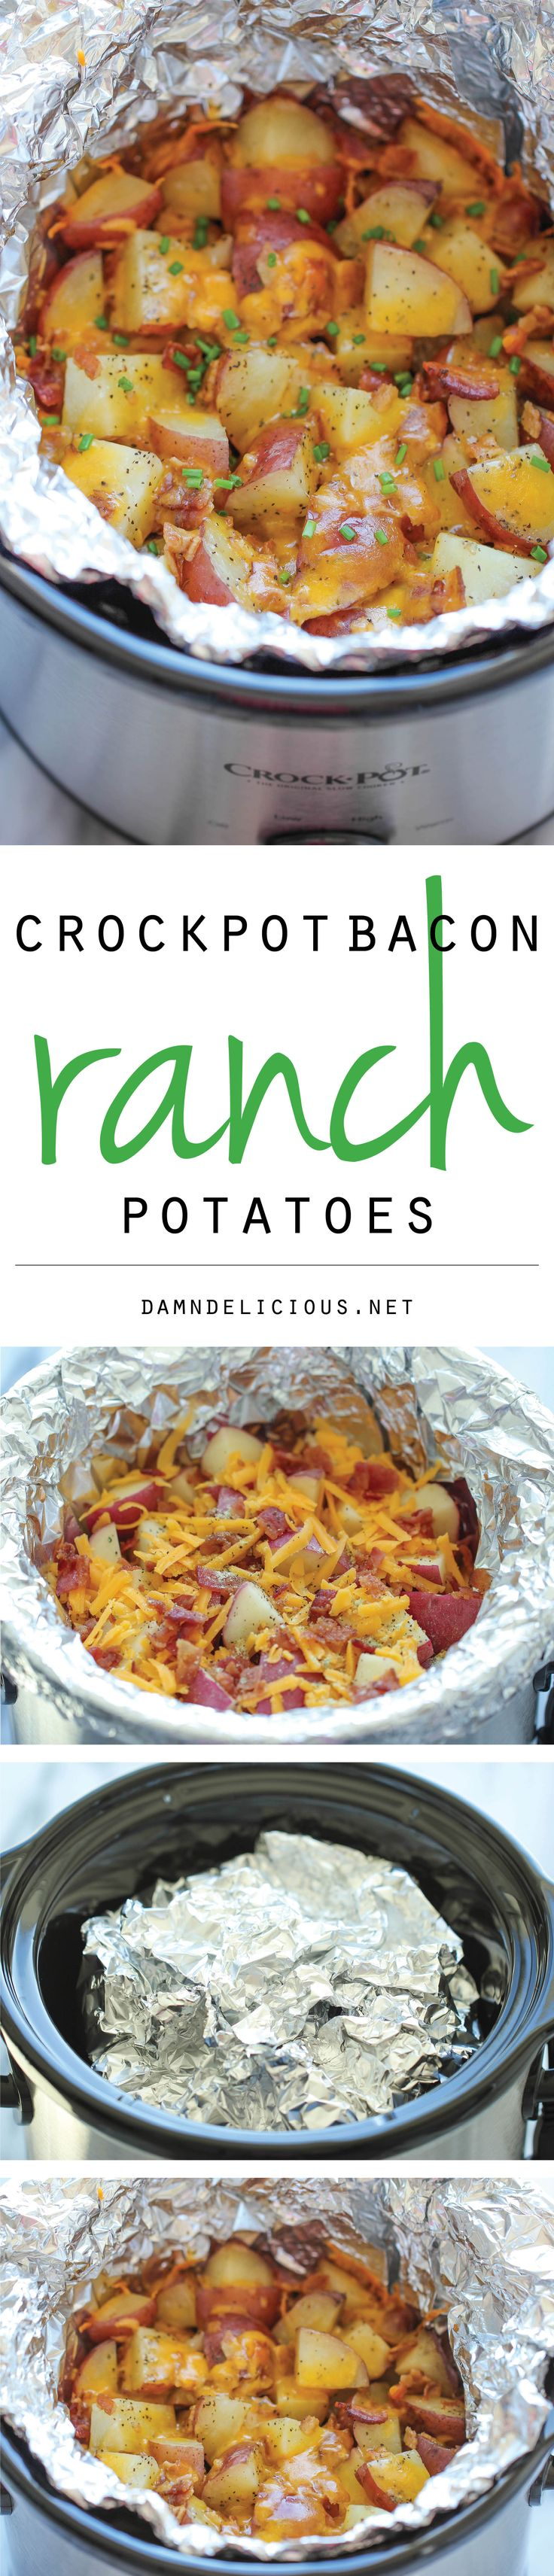 Slow Cooker Cheesy Bacon Ranch Potatoes - easy potatoes to make in the crockpot - perfectly tender, flavorful and cheesy